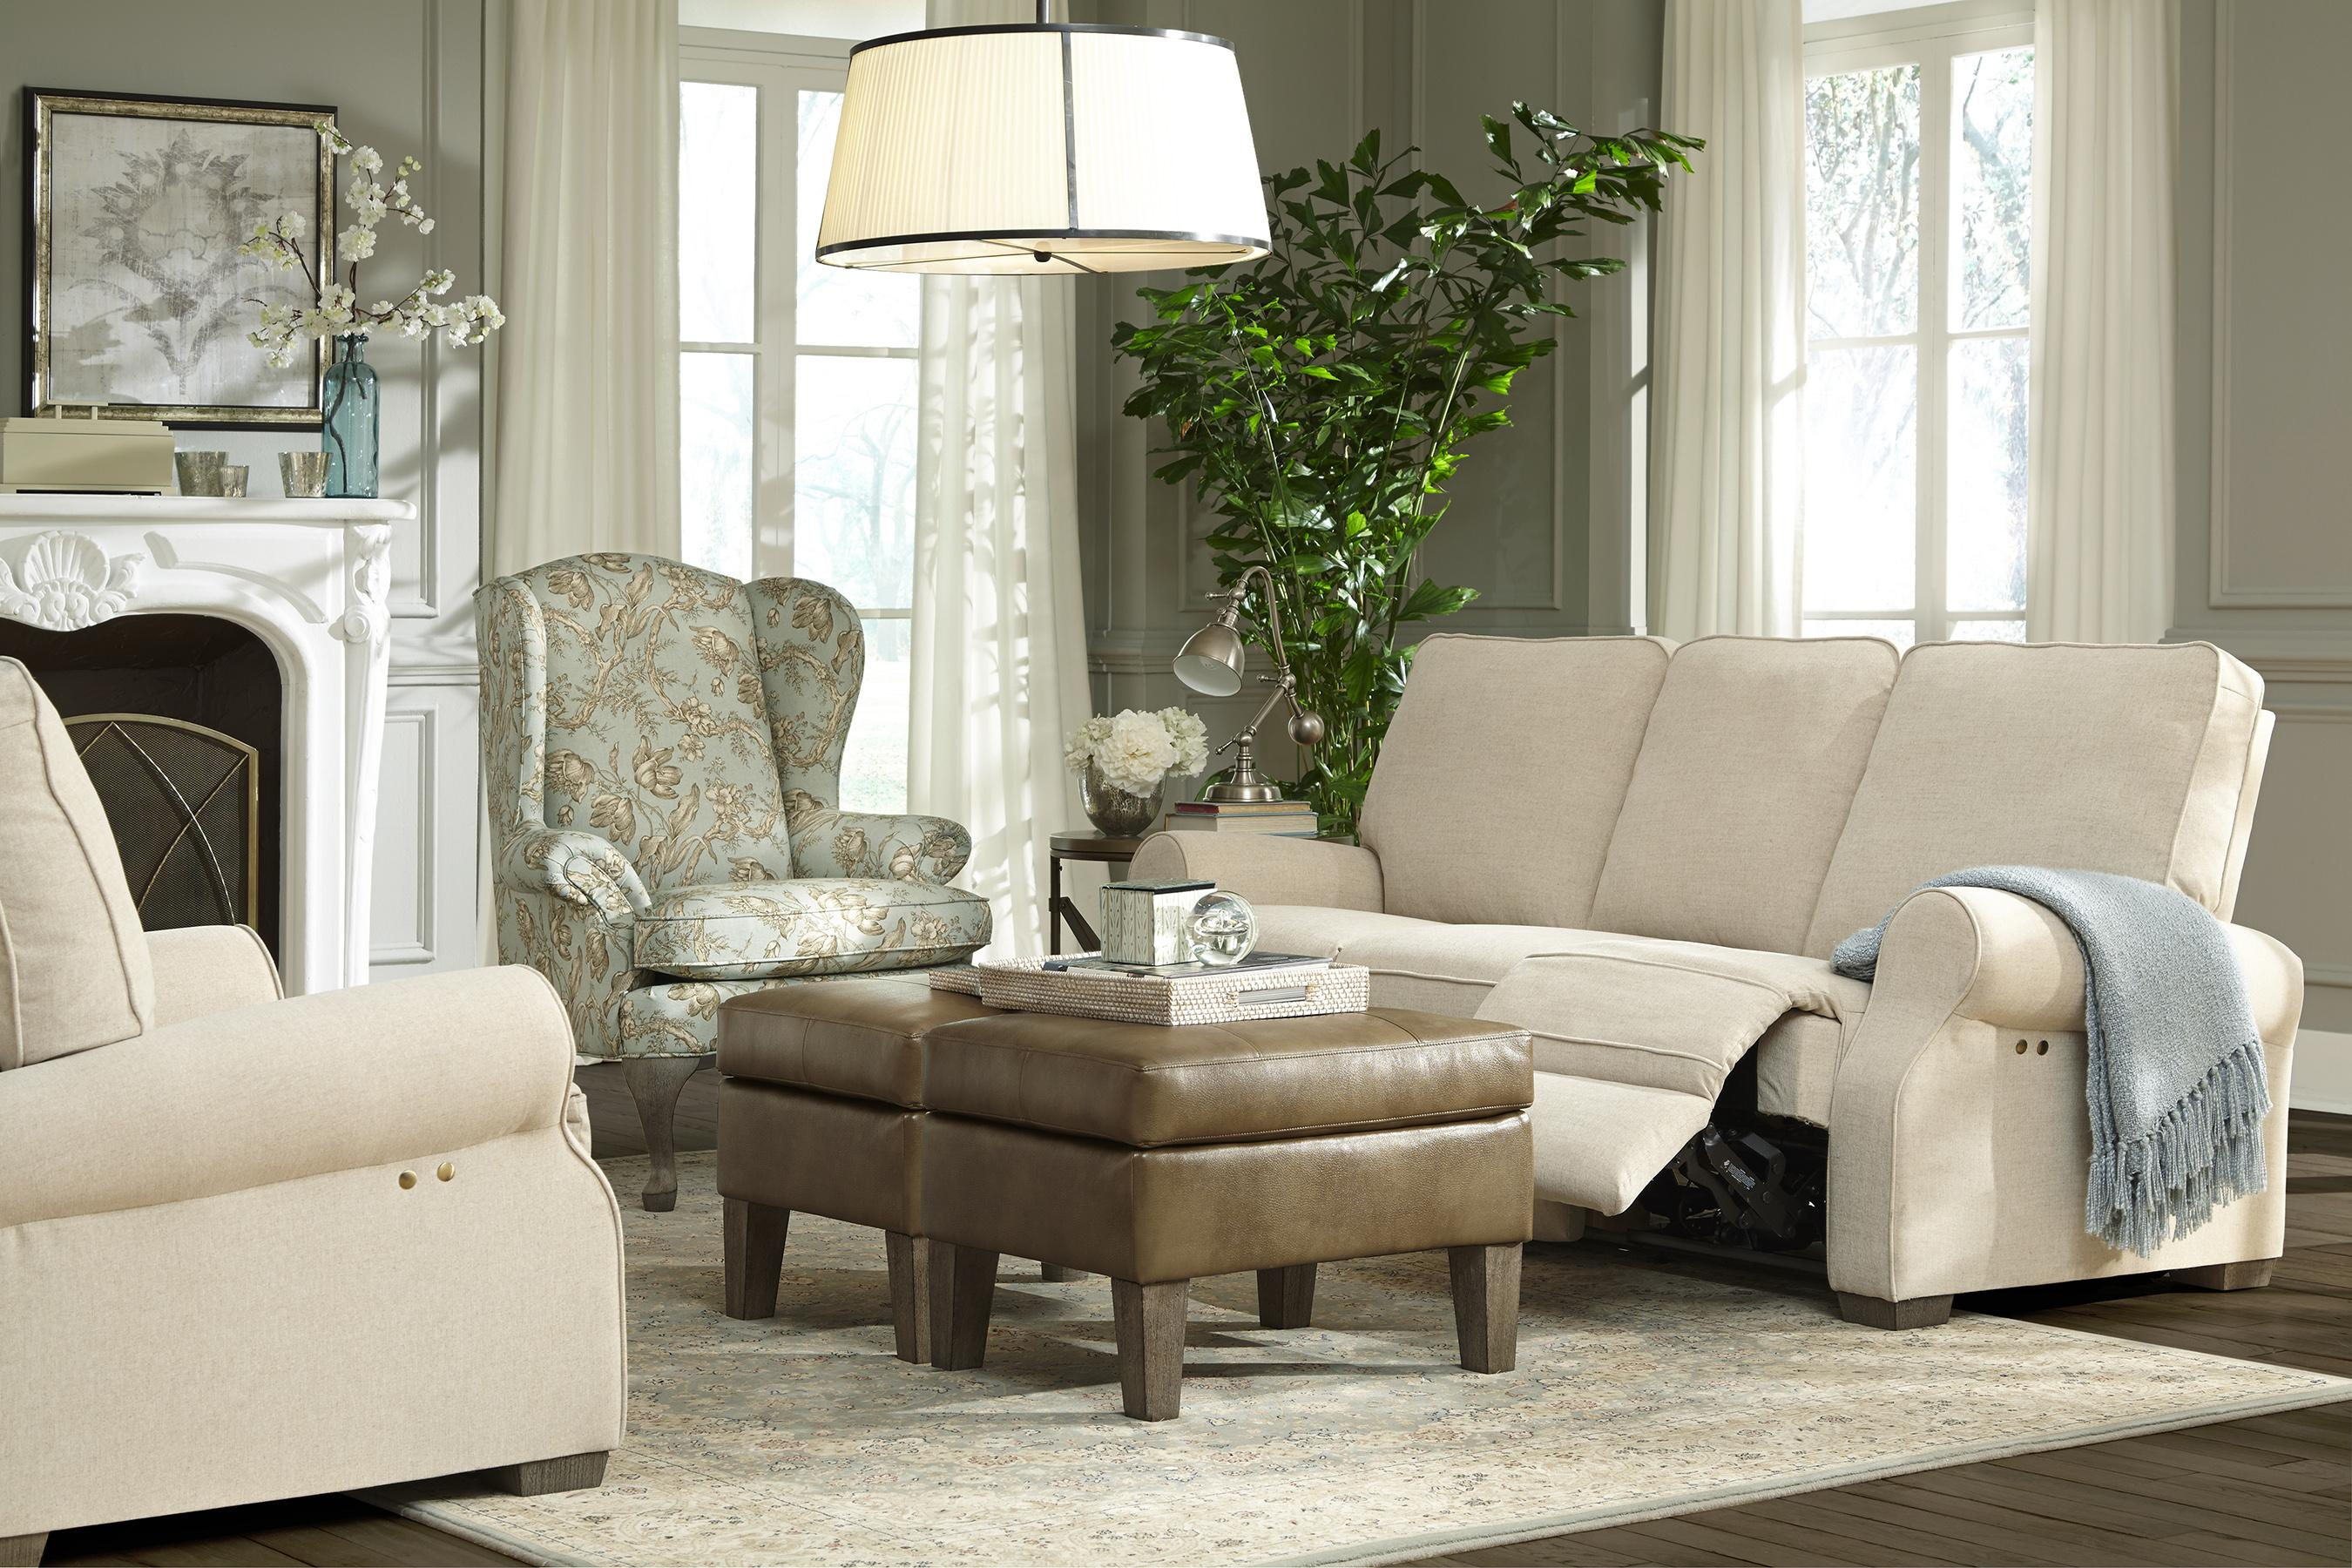 Traditional Power Reclining Sofa with High Legs by Best